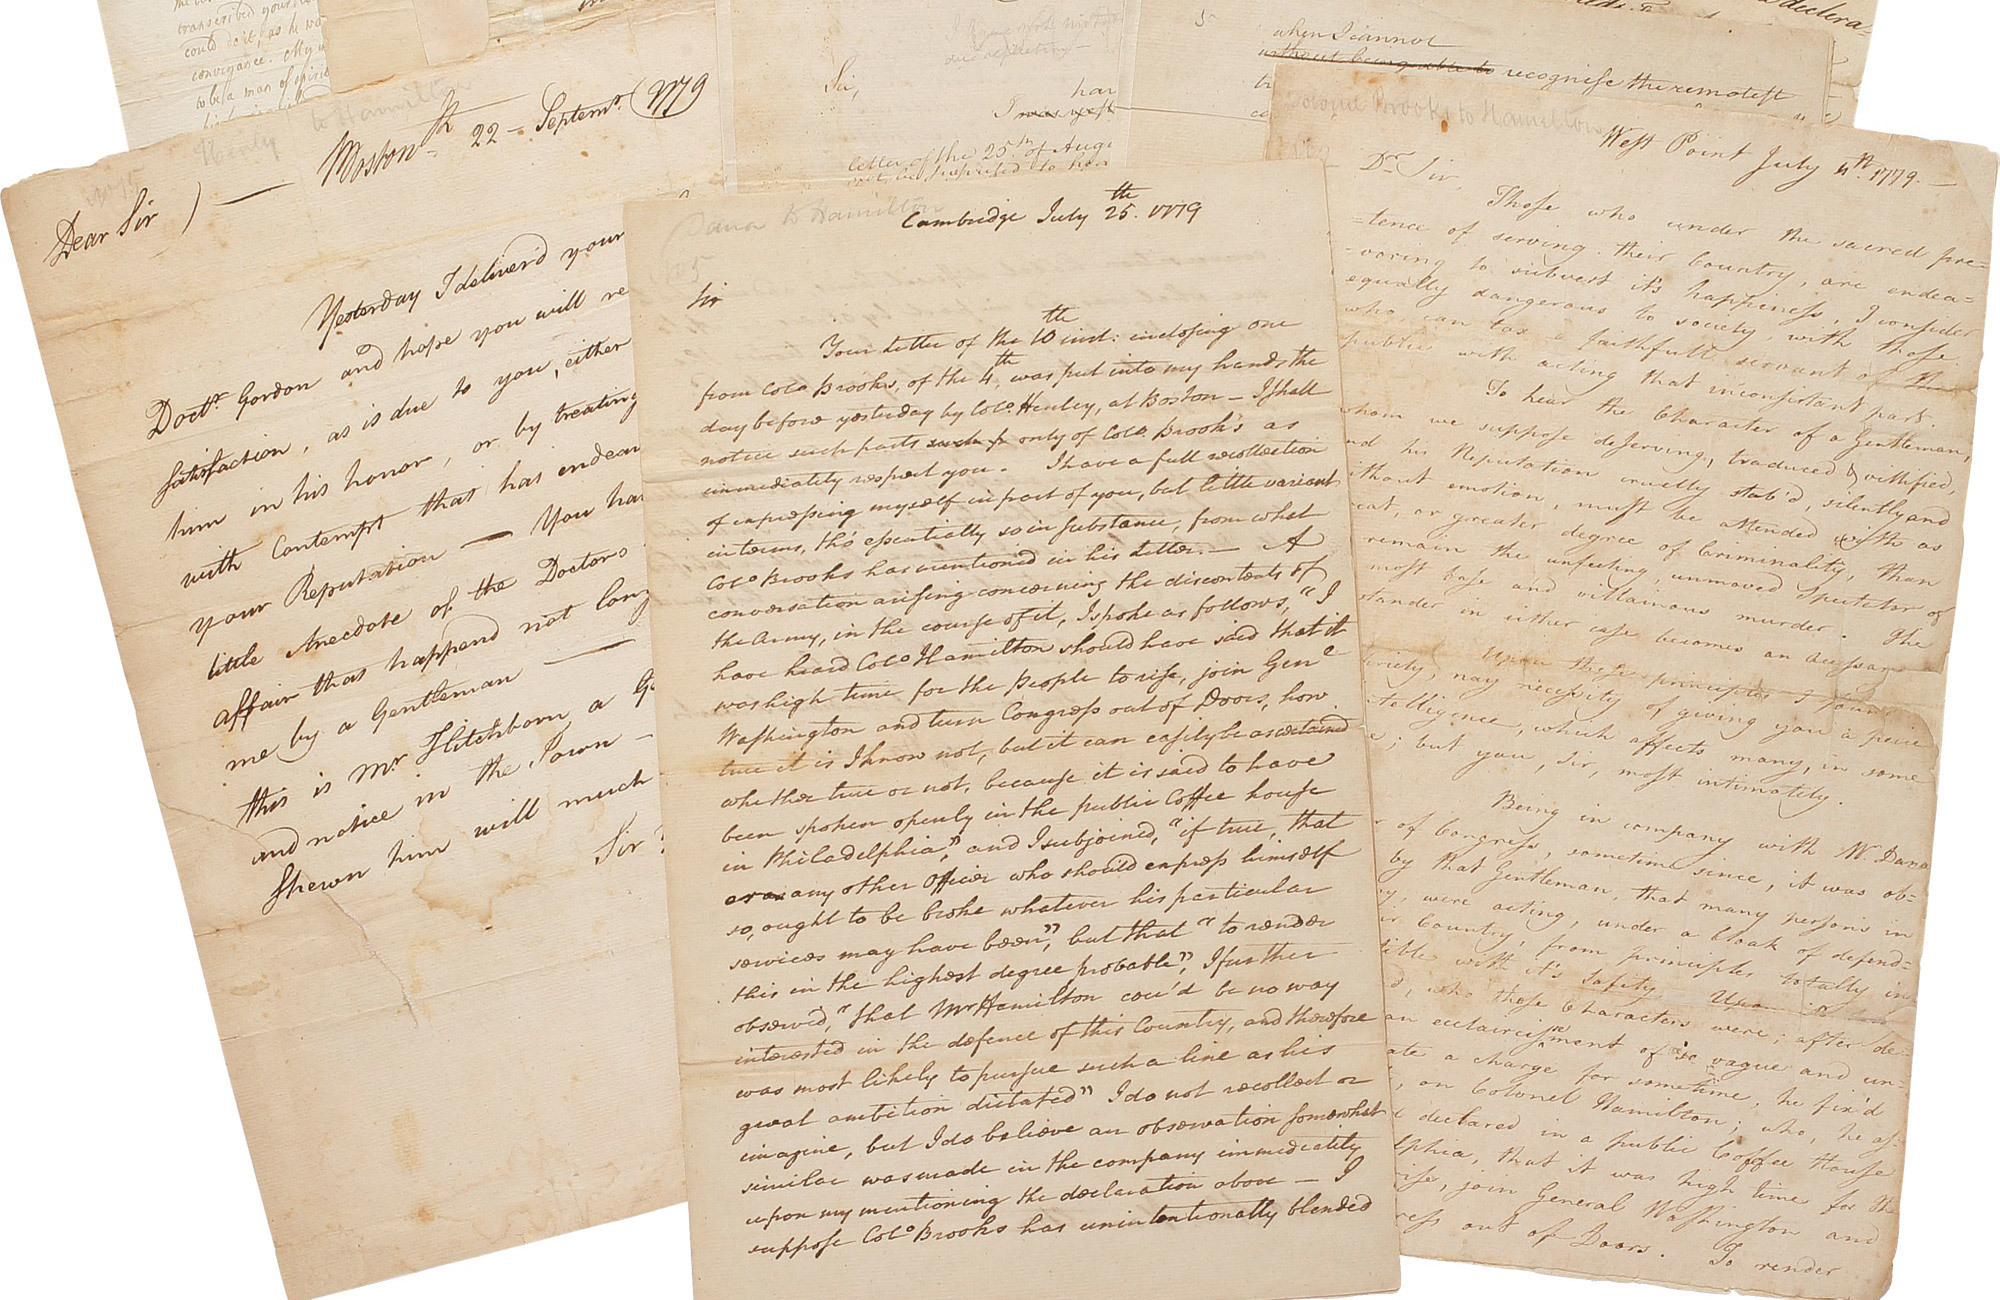 Alexander Hamilton An Important Family Archive of Letters and